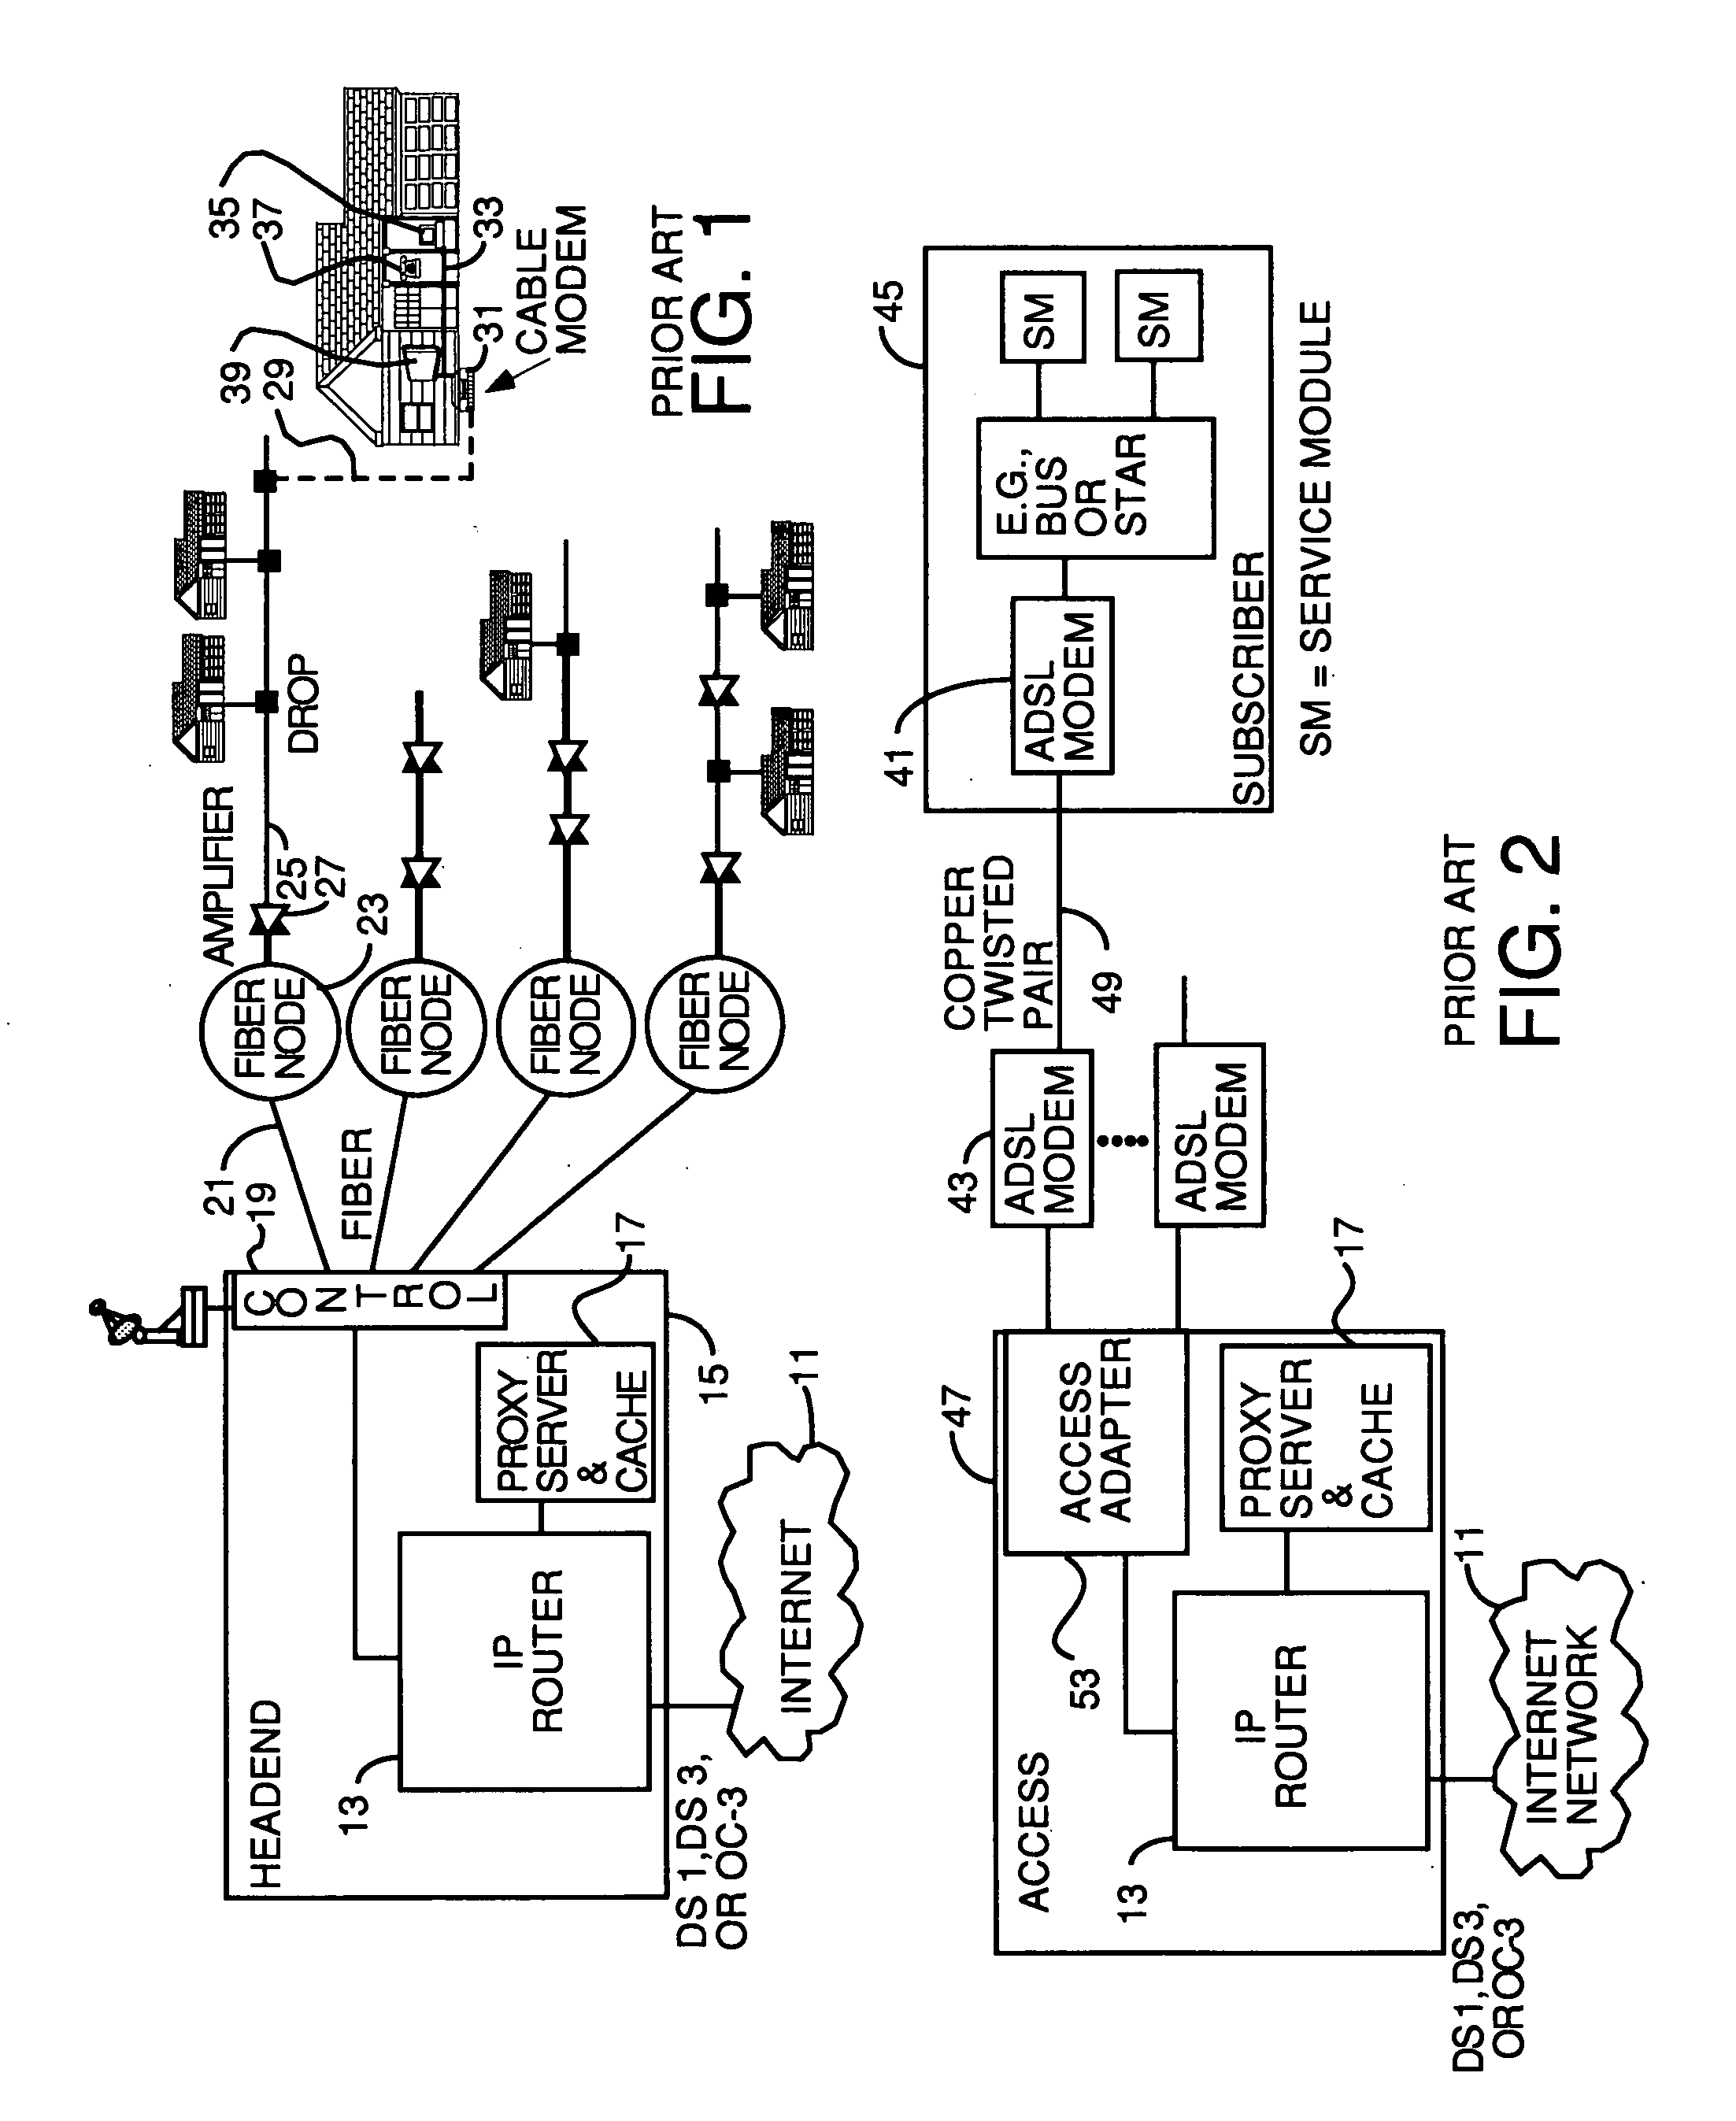 US20040172658A1 20040902 D00001 patent us20040172658 home network for ordering and delivery of,Wiring Diagram For Time Warner Cable Phone Inter